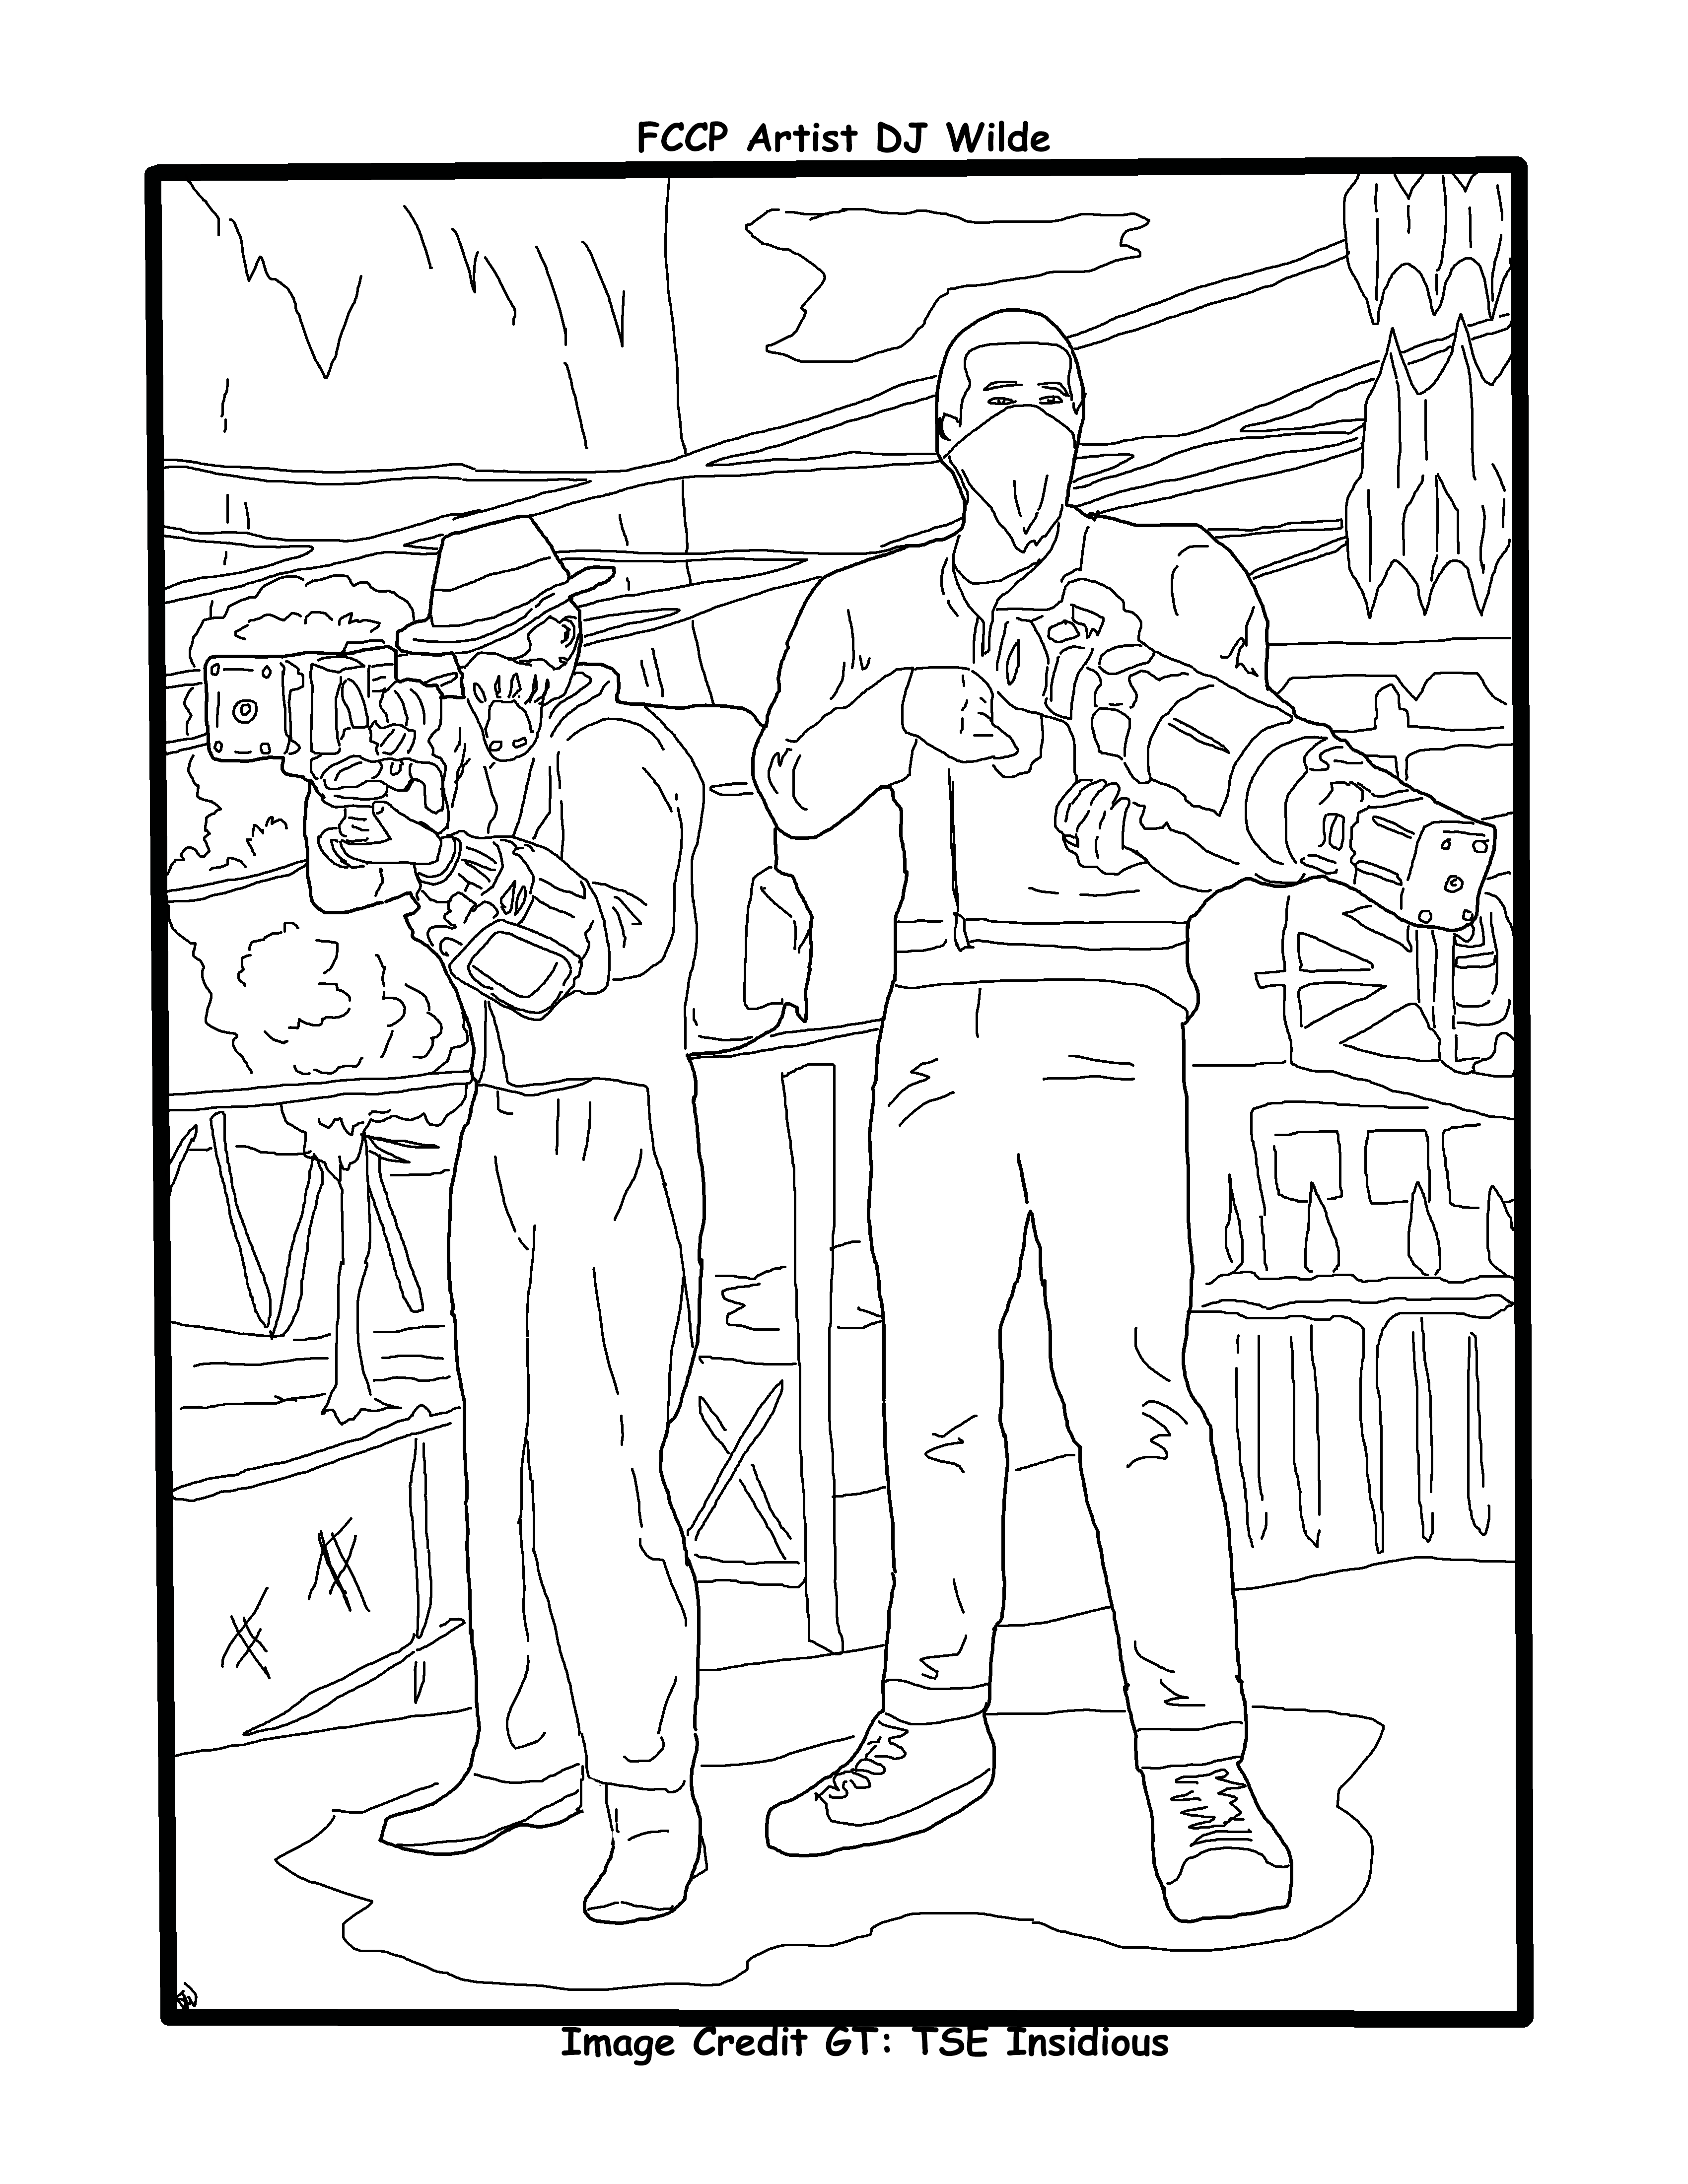 Fallout 76 laser guys coloring page | Coloring pages, Color, Diagram